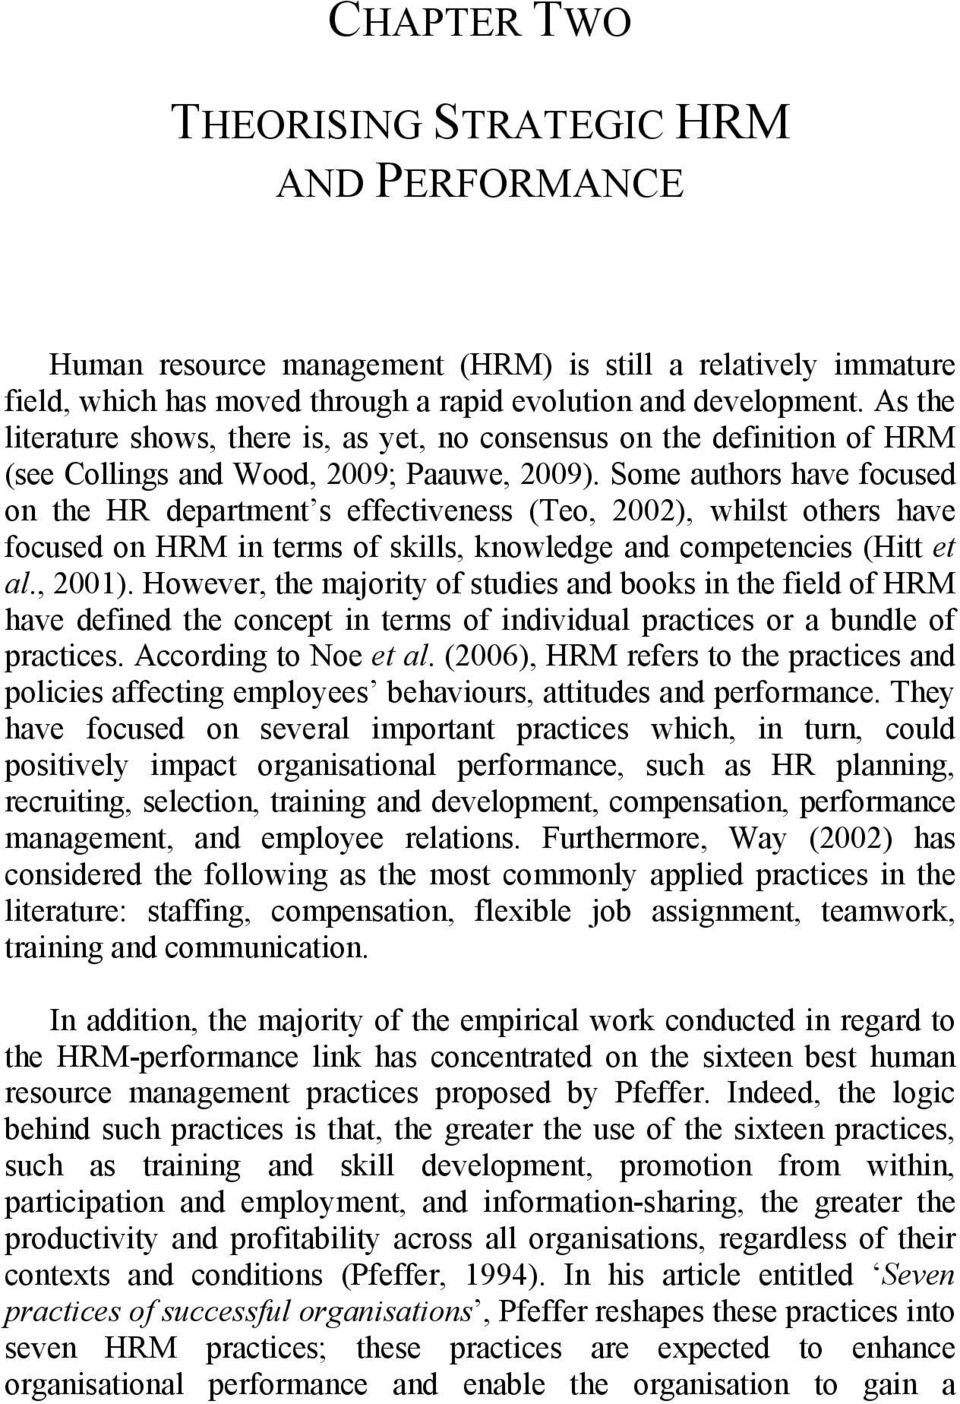 Some authors have focused on the HR department s effectiveness (Teo, 2002), whilst others have focused on HRM in terms of skills, knowledge and competencies (Hitt et al., 2001).